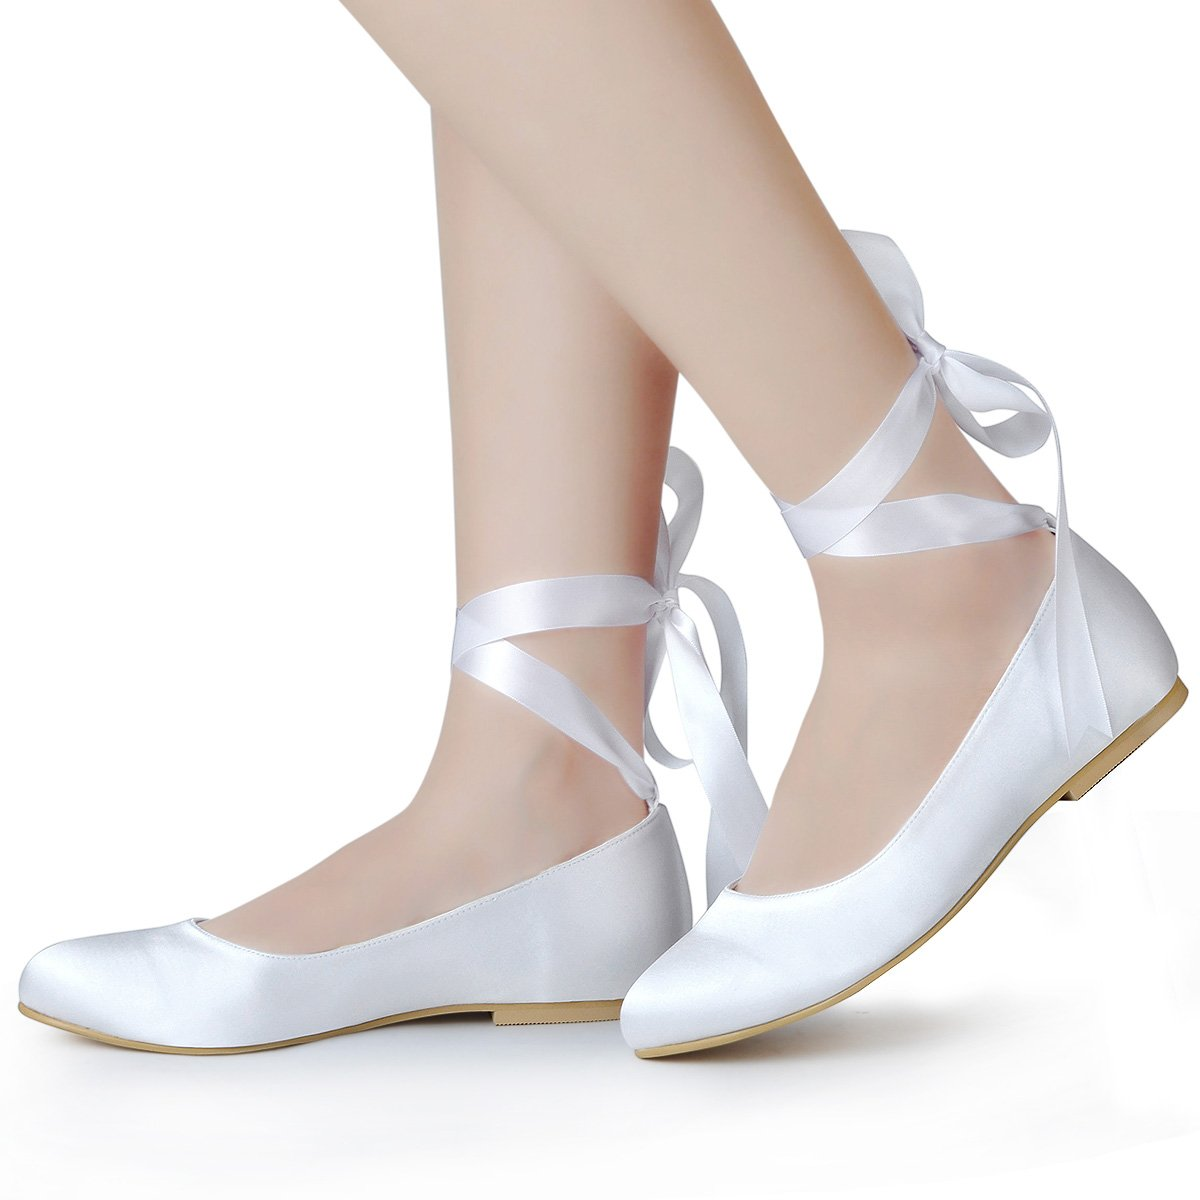 Pin Up Shoes- Heels, Pumps & Flats ElegantPark Women Comfort Flats Closed Toe Ribbon Tie Satin Wedding Bridal Shoes $42.95 AT vintagedancer.com